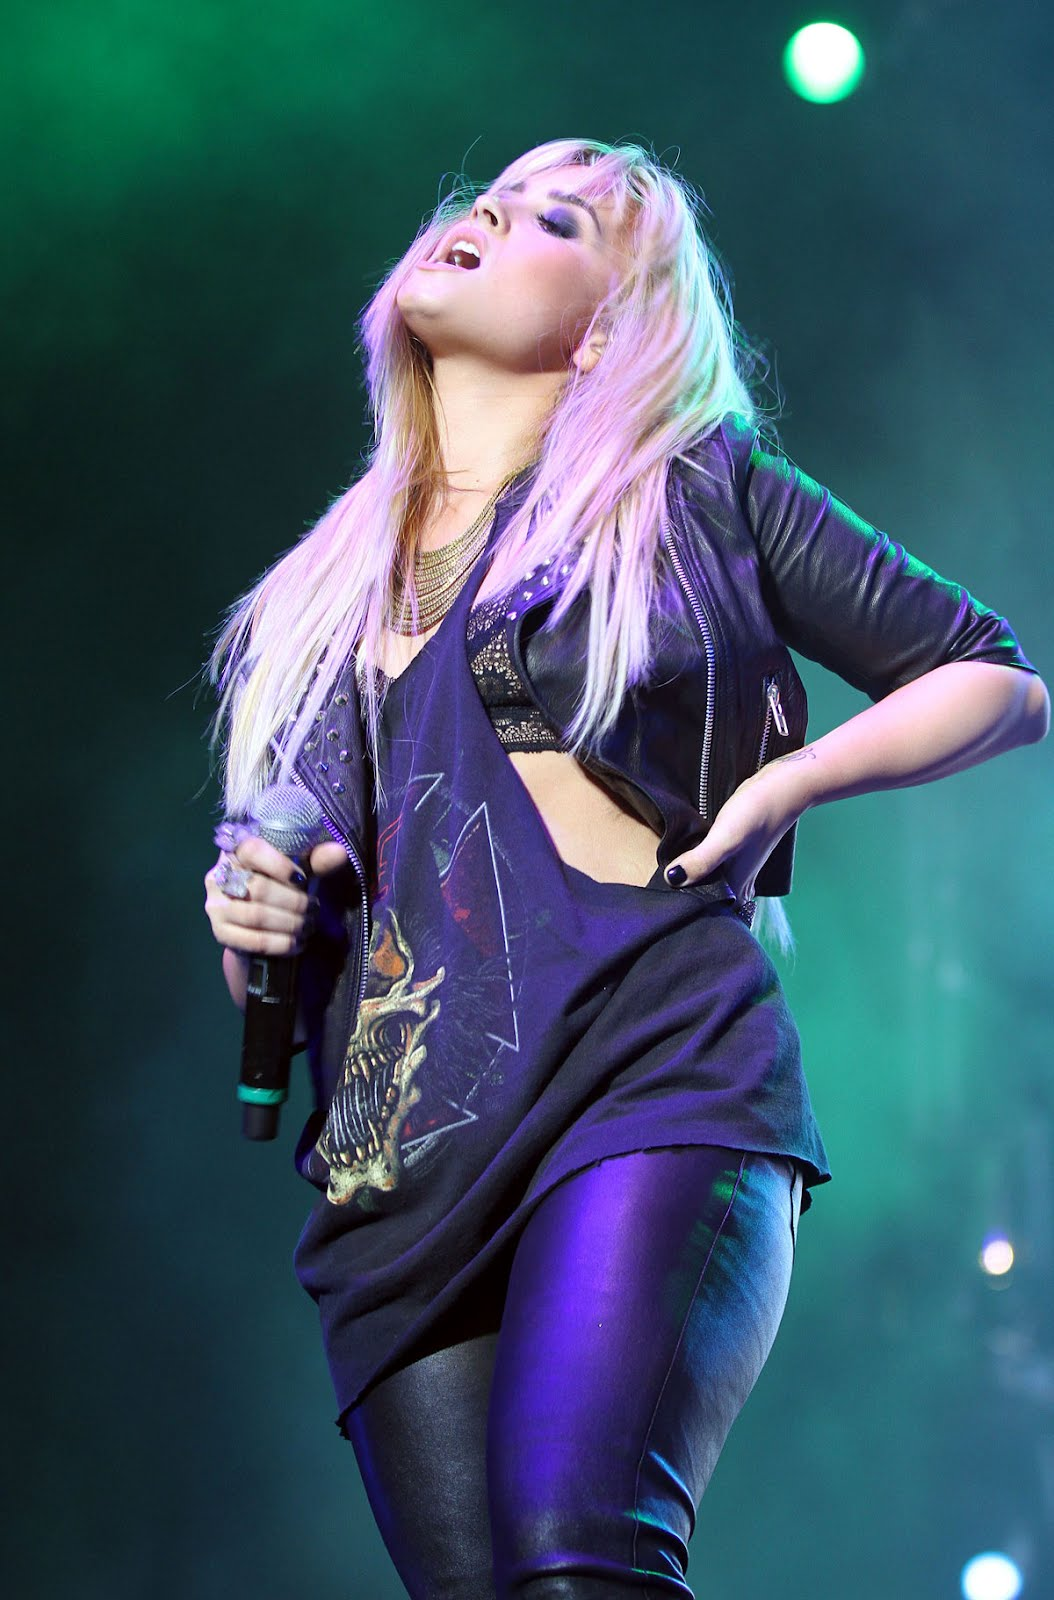 http://3.bp.blogspot.com/-I_F32V0WnD0/UG2ejFFX9YI/AAAAAAAADVo/bfY4id9kxRQ/s1600/DEMI-LOVATO-in-Leather-Pants-Performing-at-2012-Z-Festival-in-Sao-Paulo-2.jpg